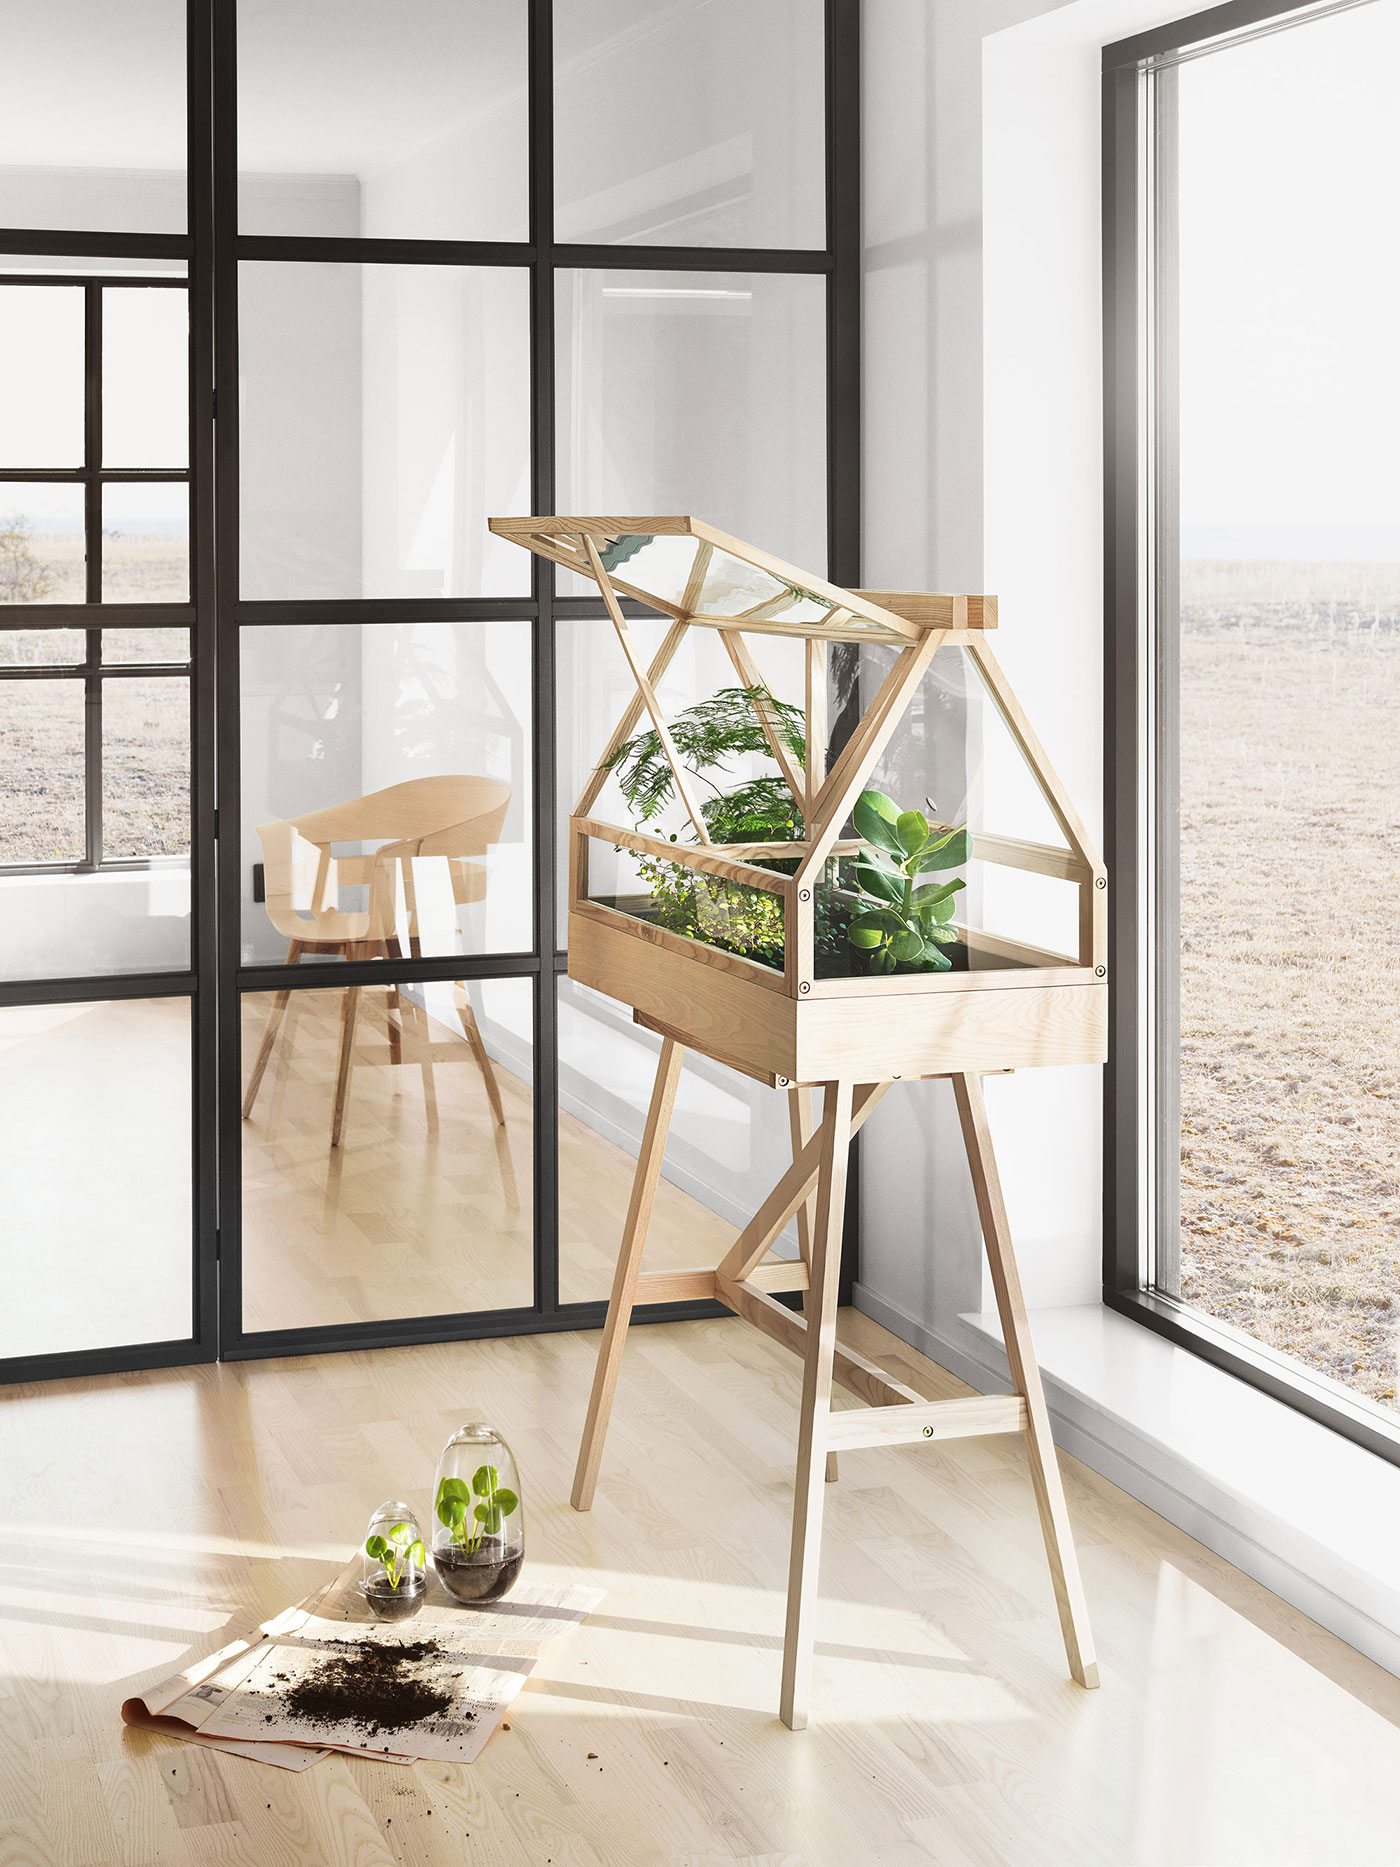 Decorative Greenhouse By Atelier 2 Adorable Home